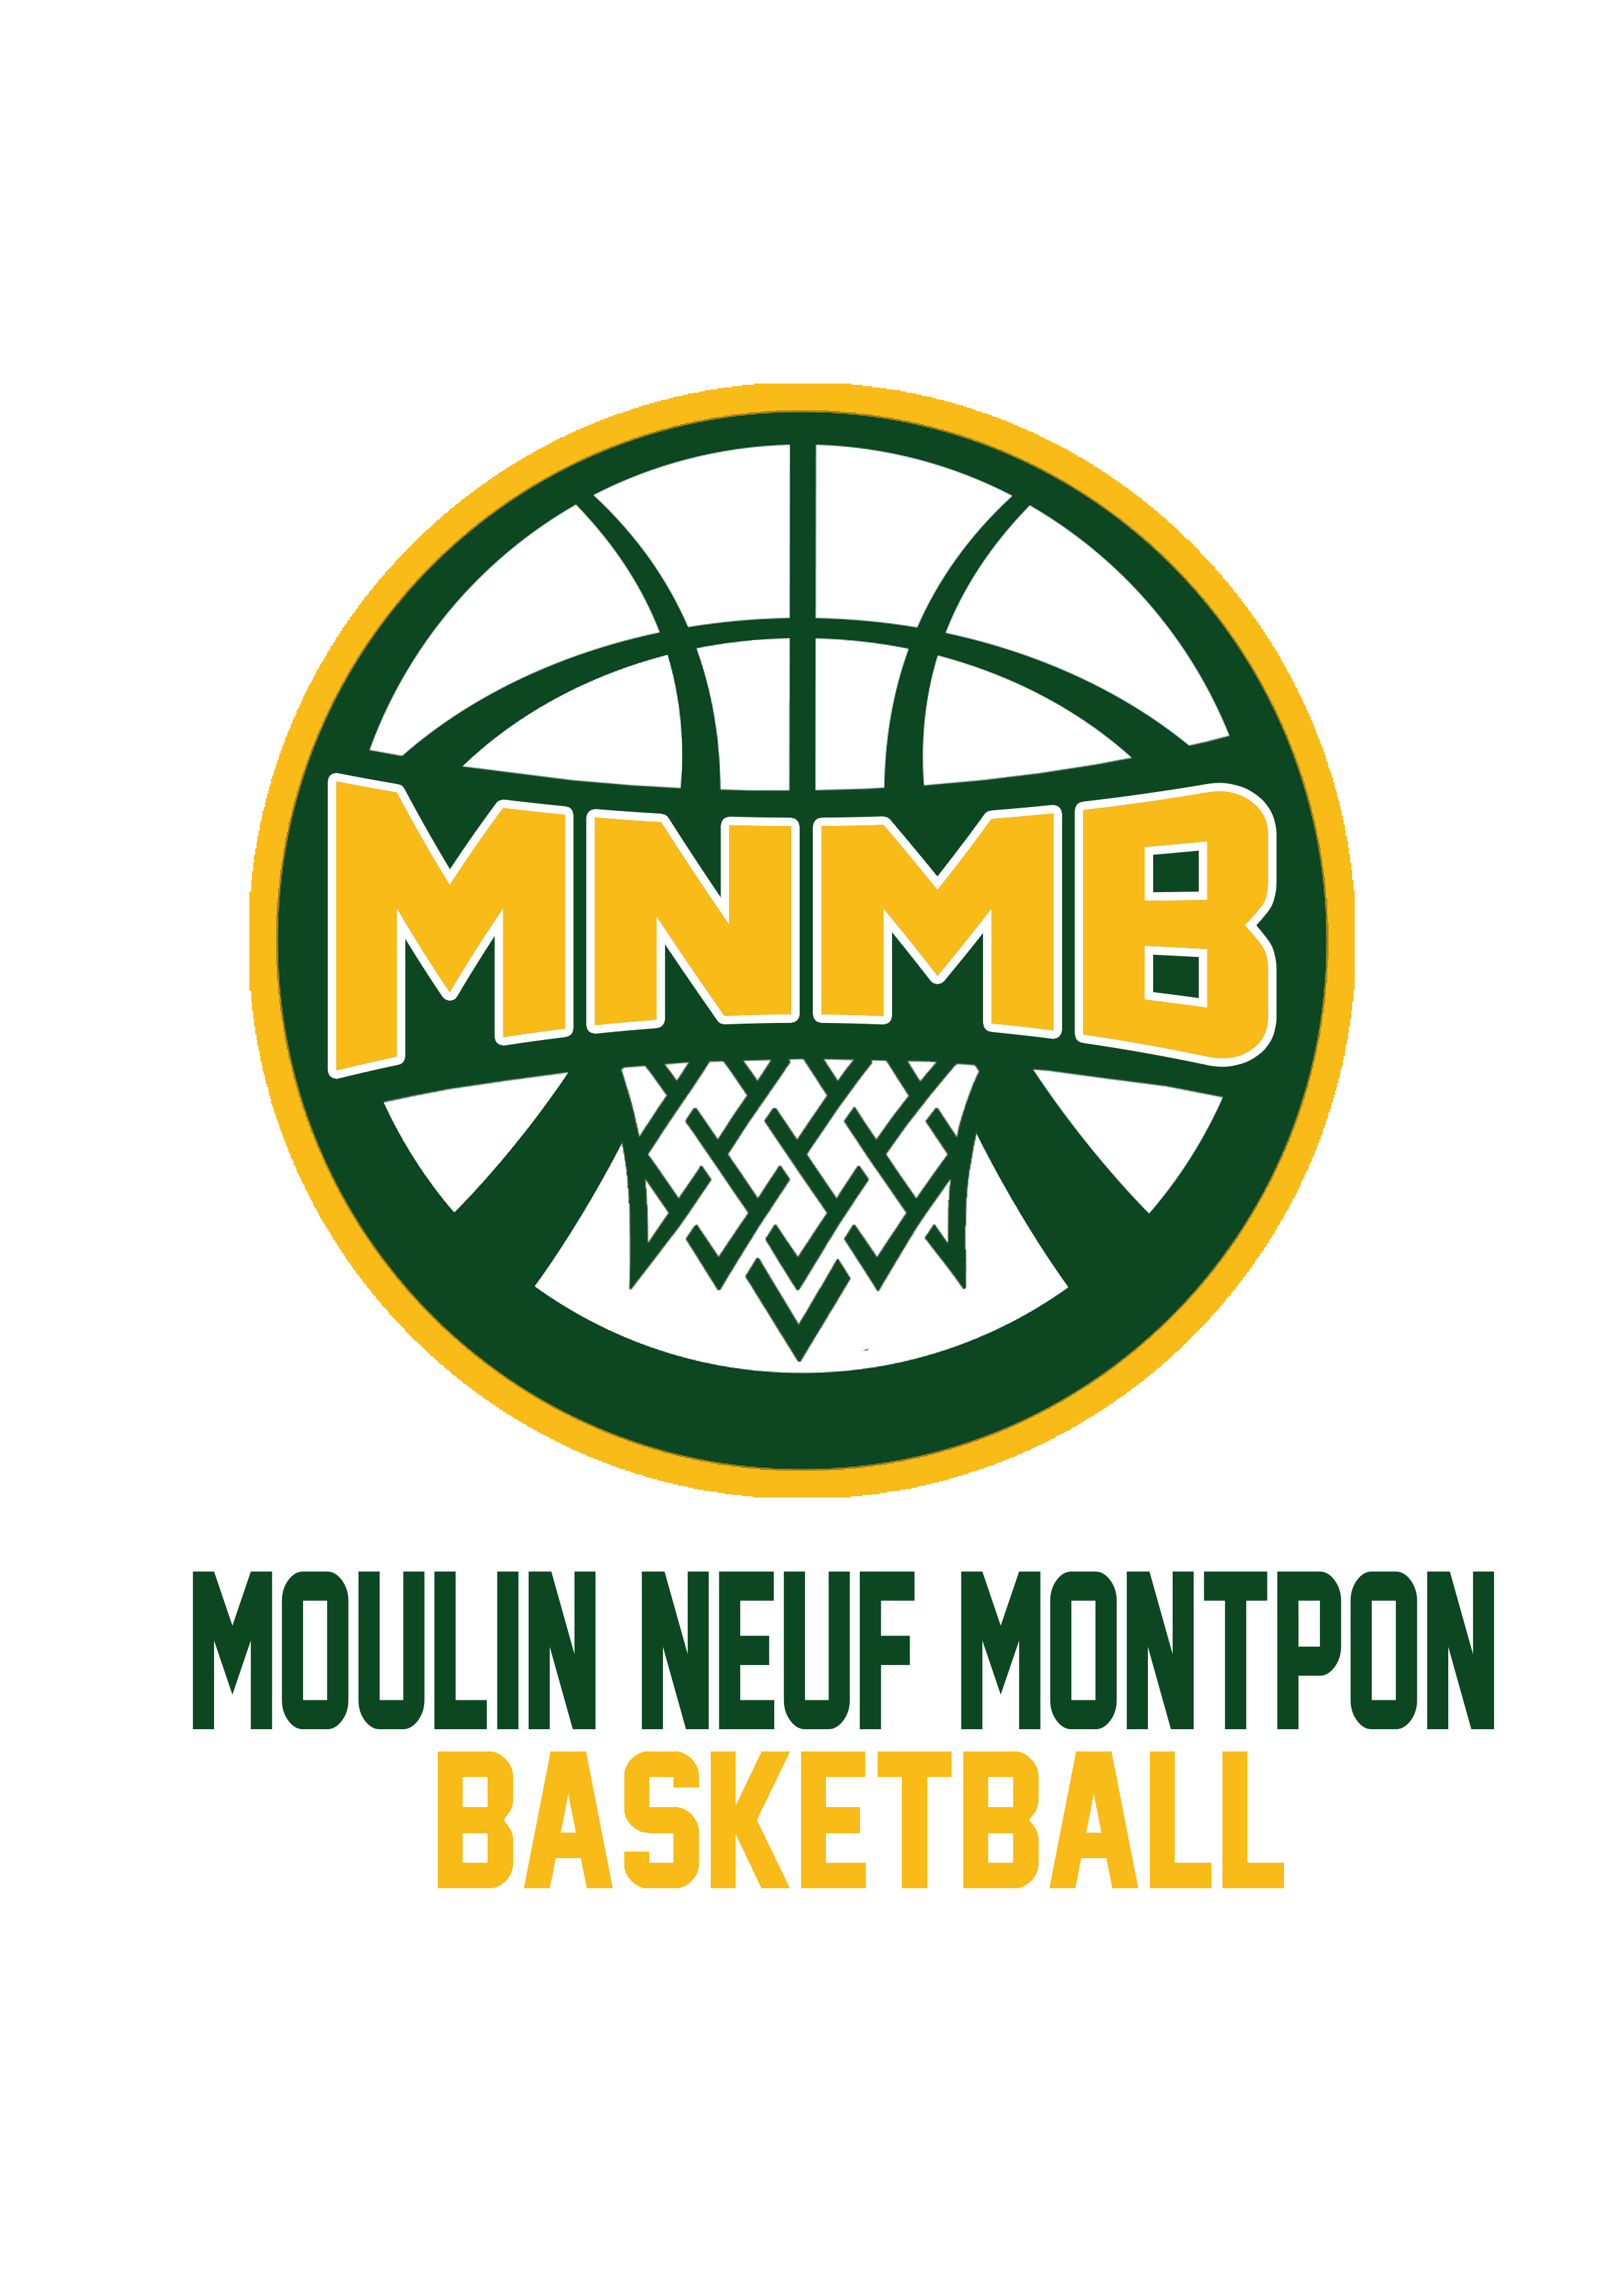 MOULIN NEUF MONTPON BASKET